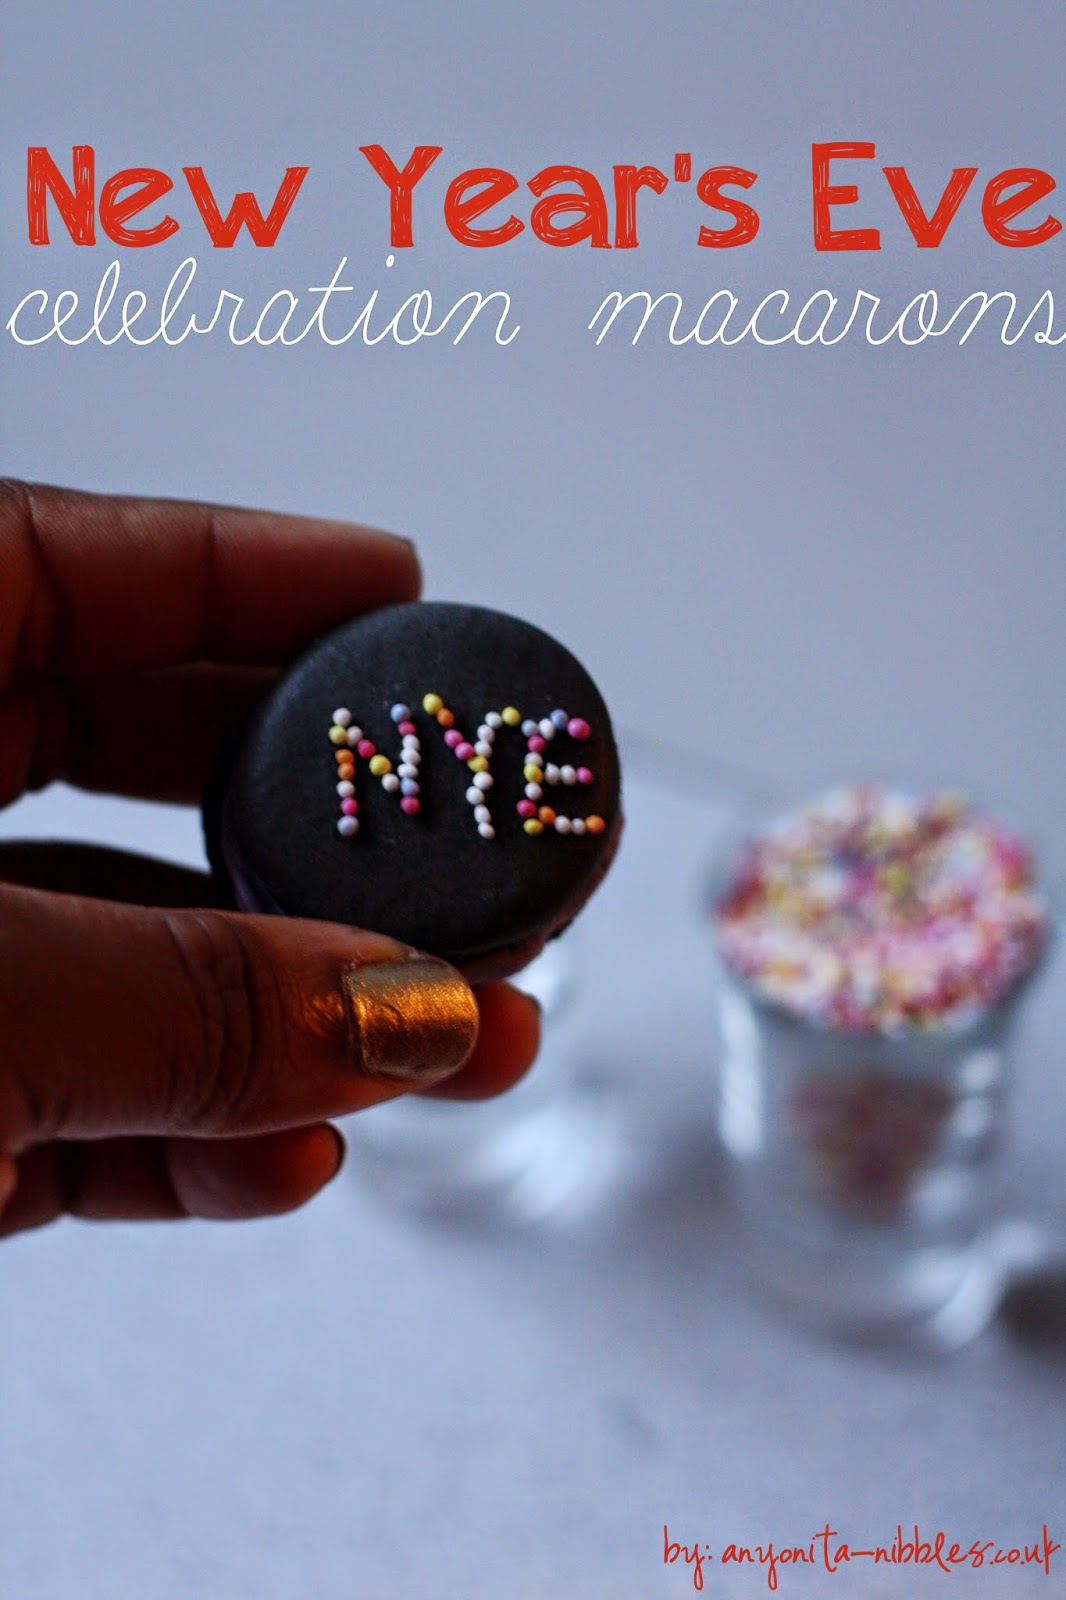 New Year's Eve Celebration Macarons from Anyonita-nibbles.co.uk